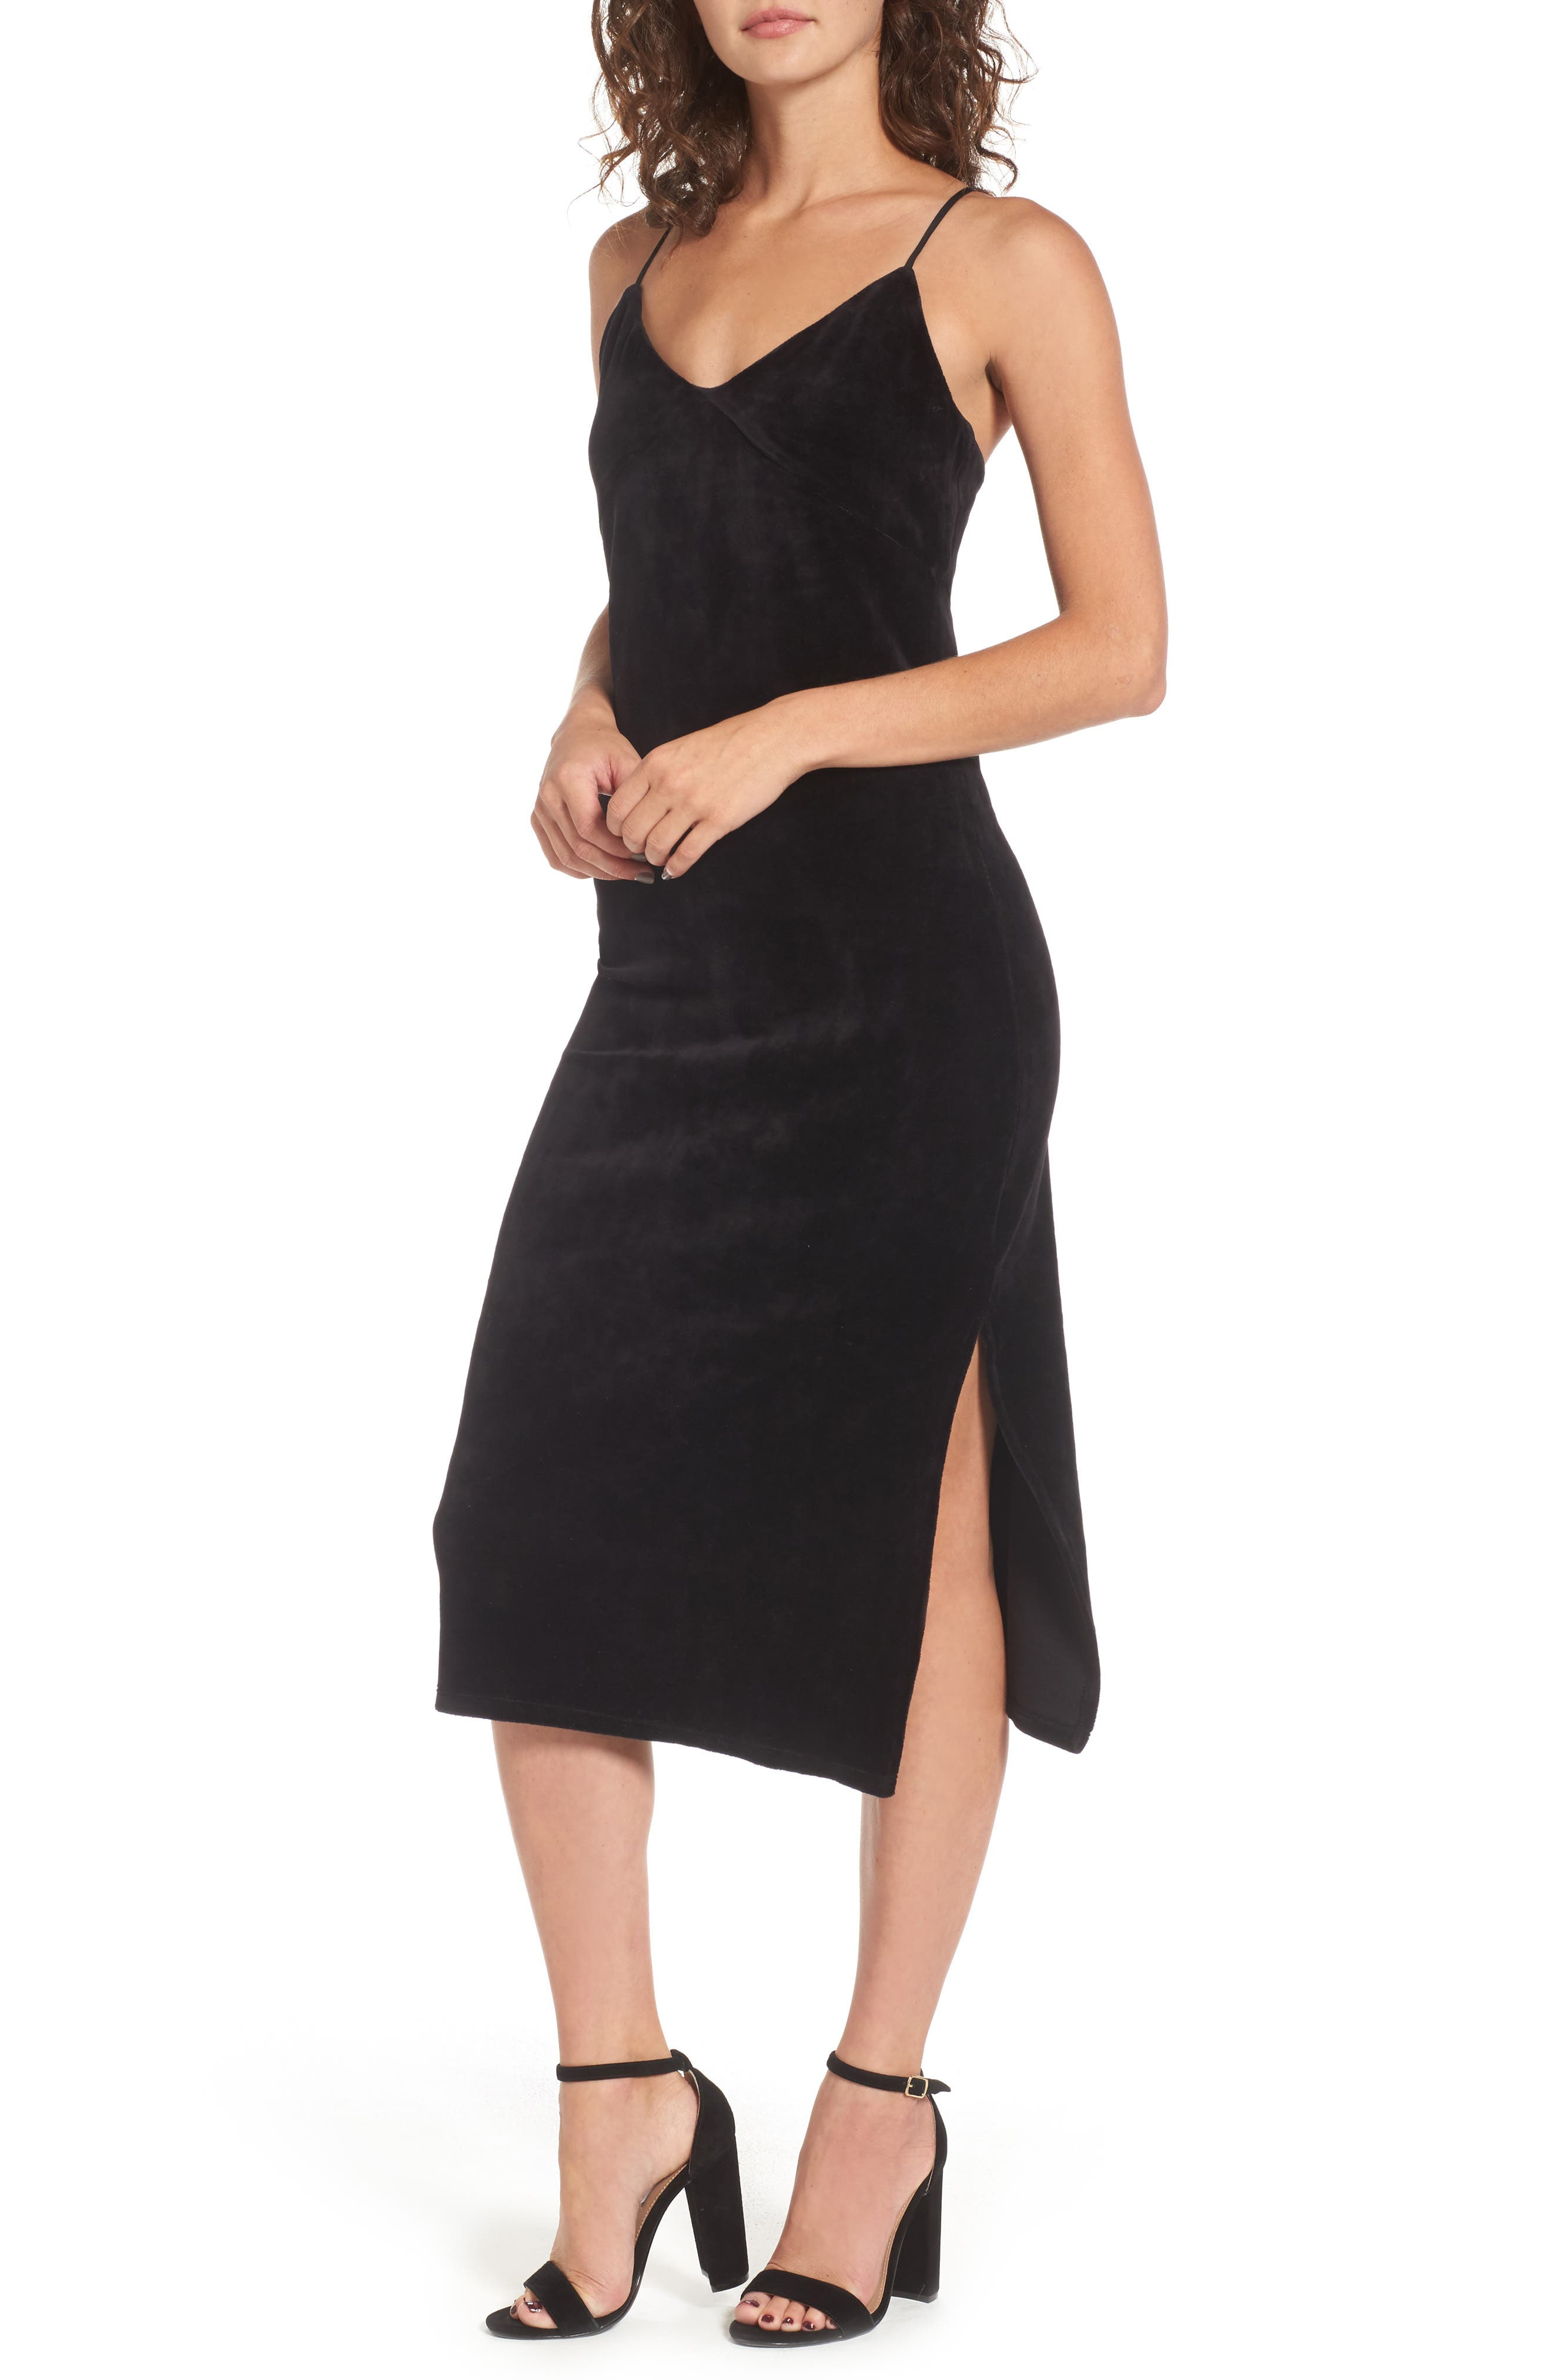 Alternate Image 1 Selected - Juicy Couture Stretch Velour Slipdress